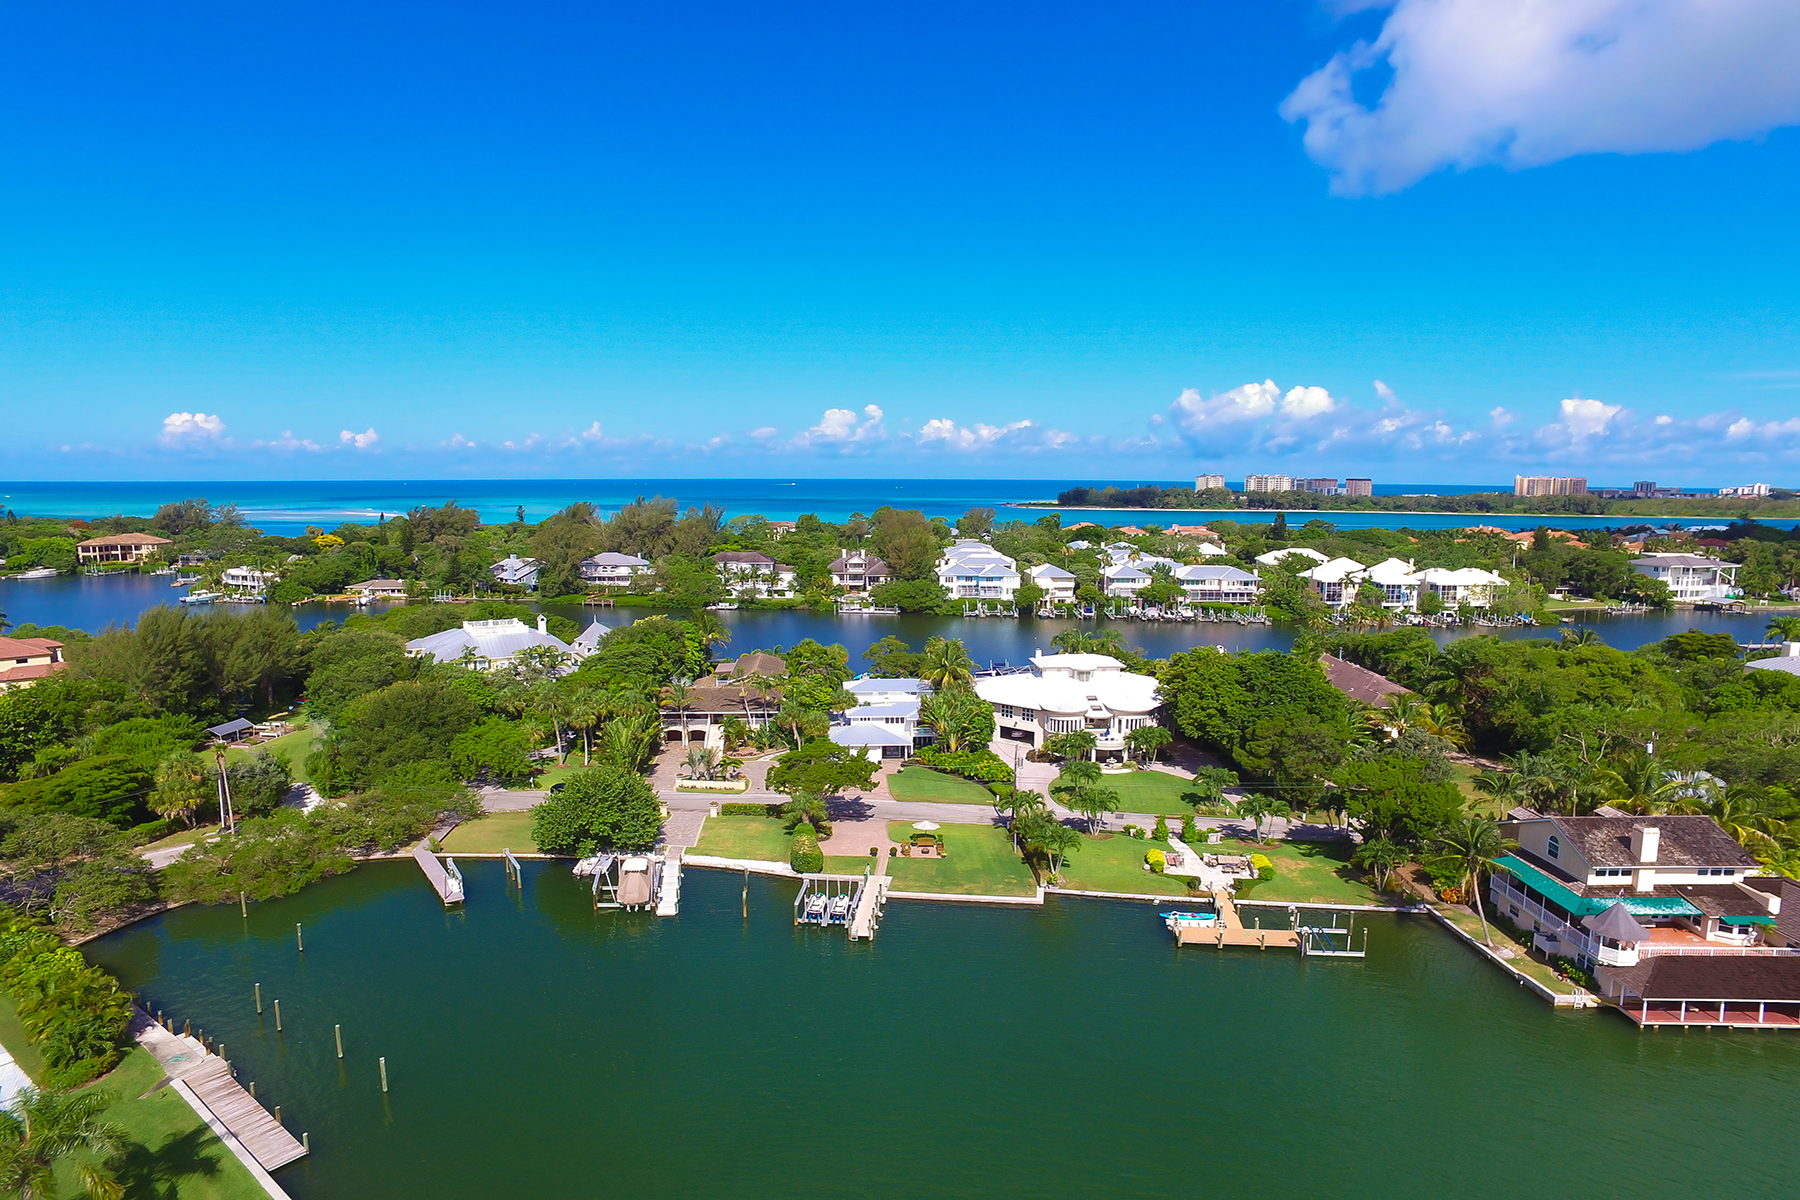 Single Family Home for Sale at SIESTA KEY 4044 Roberts Point Rd Sarasota, Florida, 34242 United States